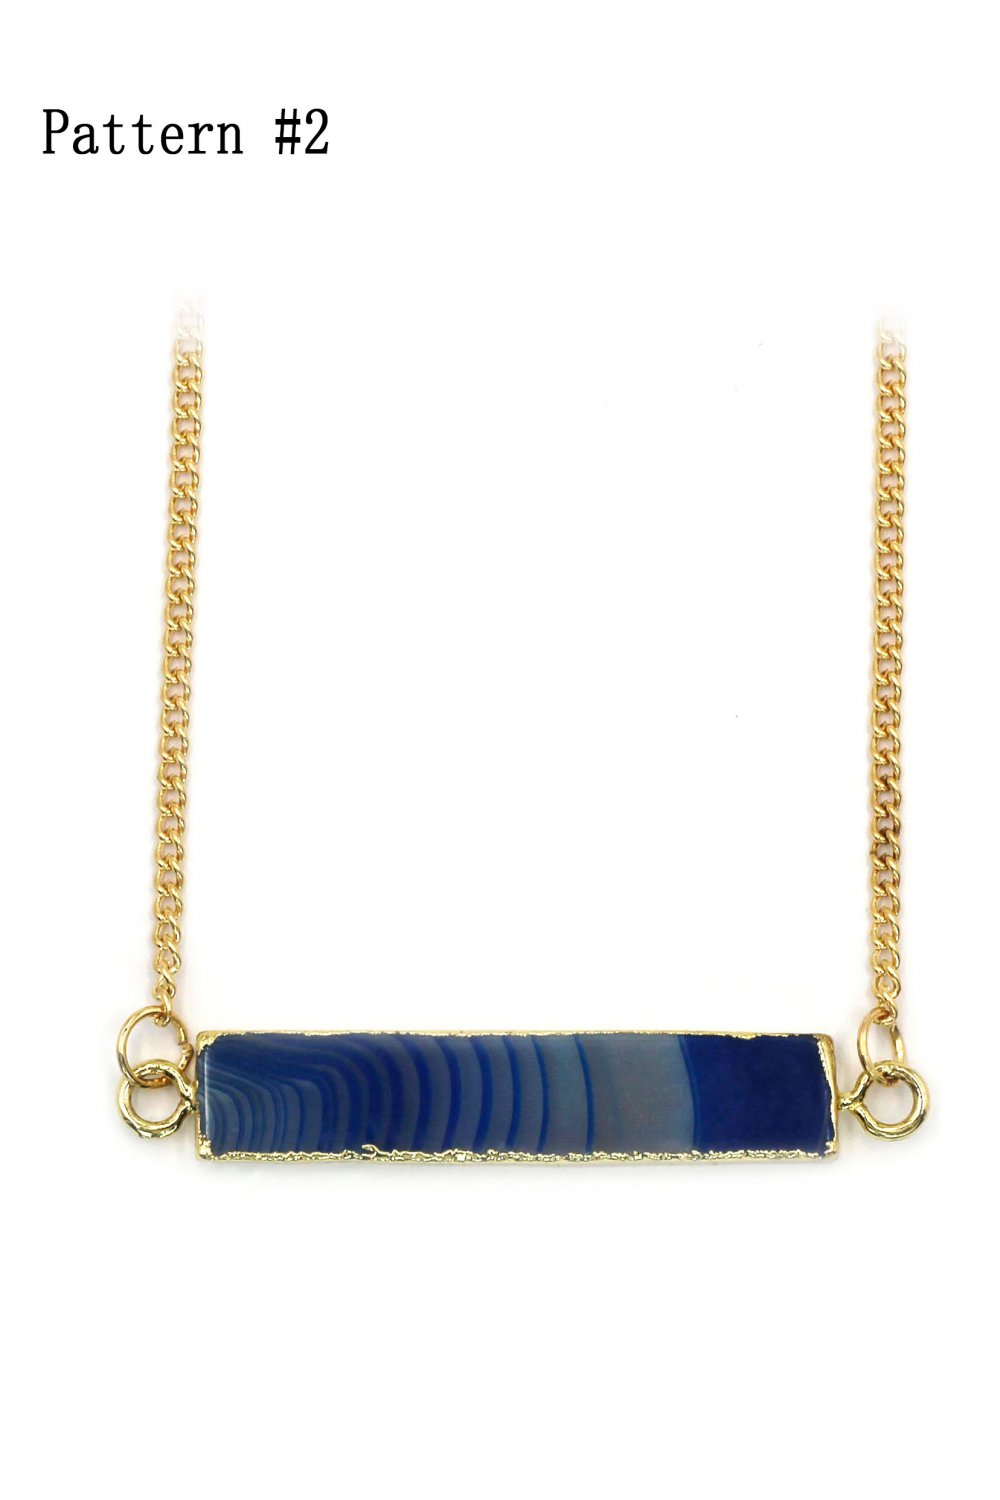 Fashion natural stone golden necklace Pattern #2